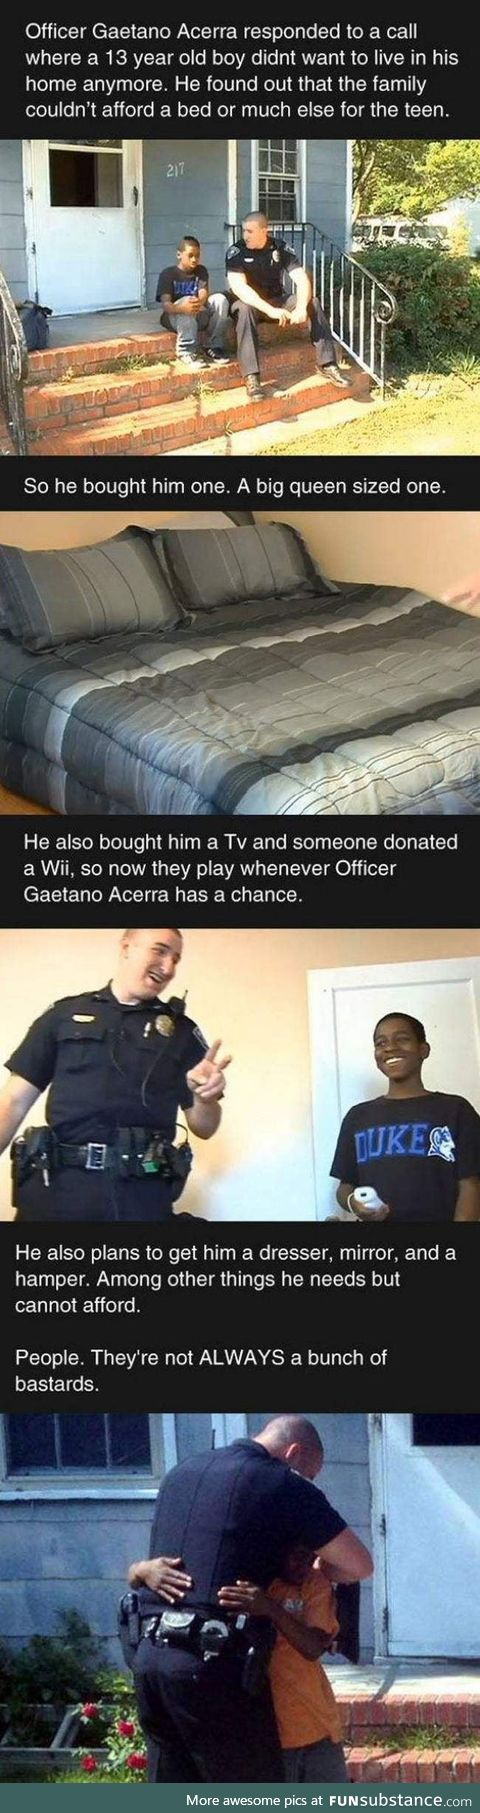 We should all be this bro-like